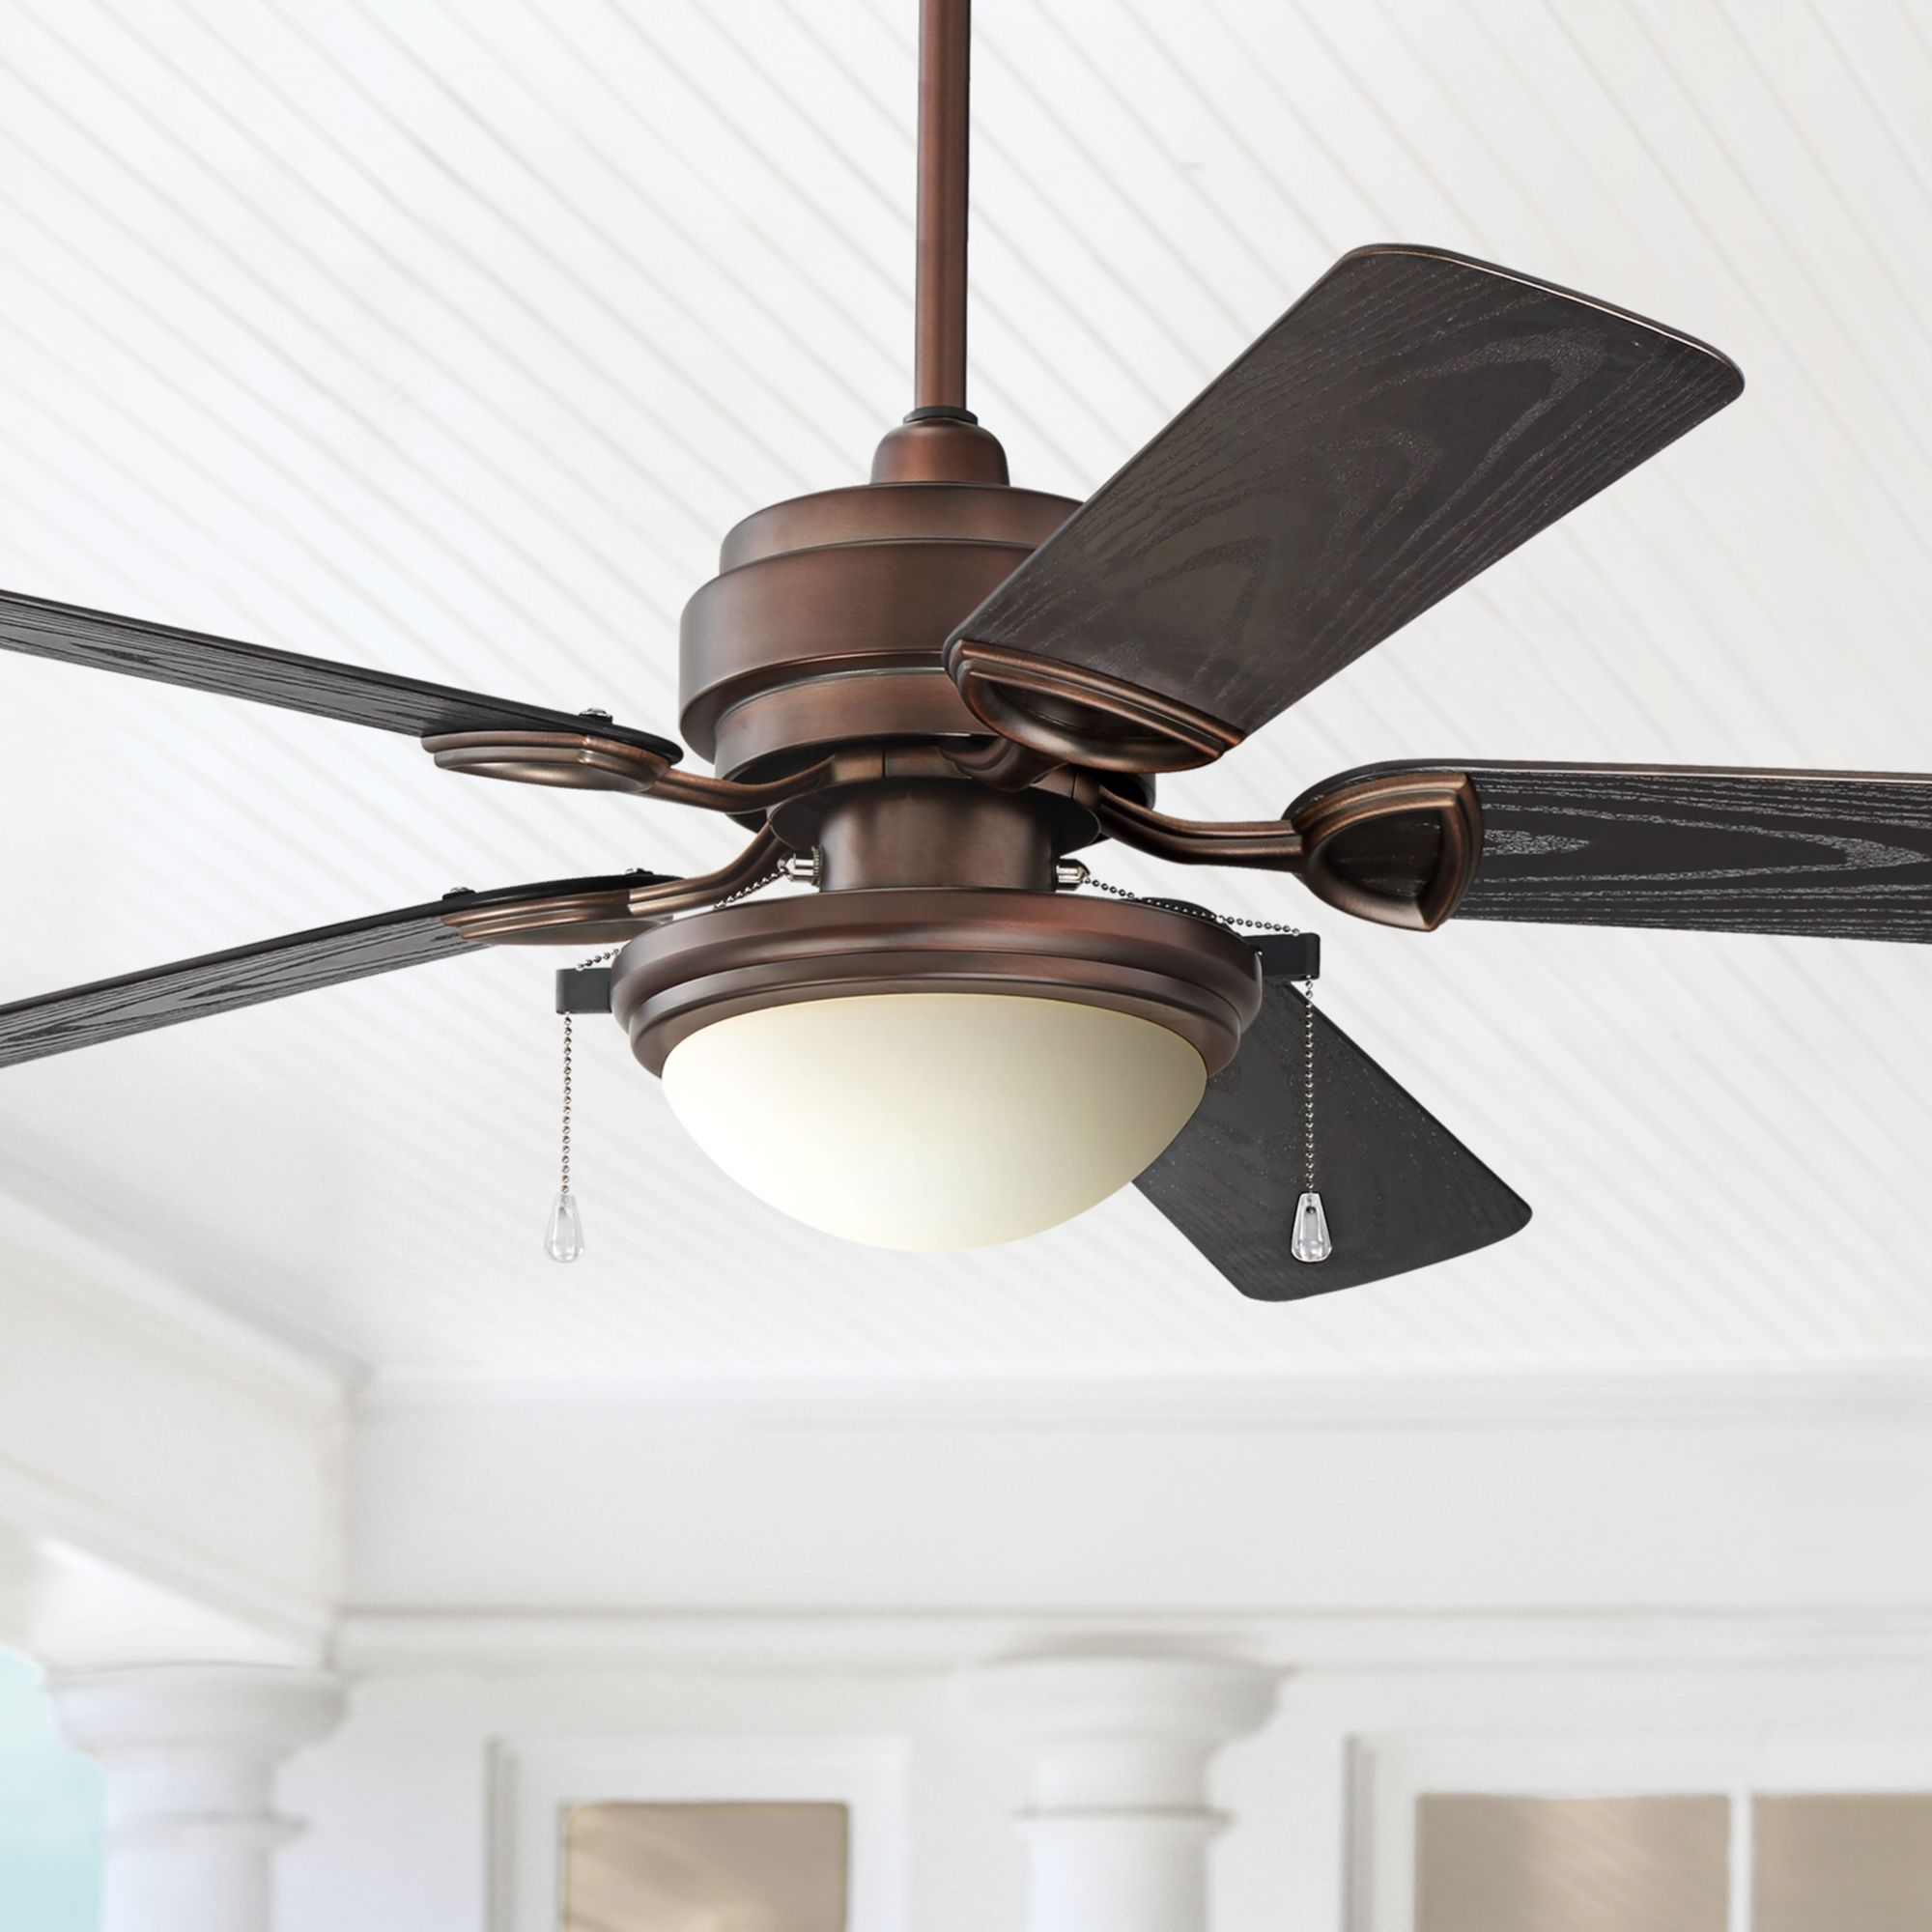 Merrimack 52-in Antique Bronze Downrod Mount Indoor//Outdoor Ceiling Fan with Light Kit and Remote